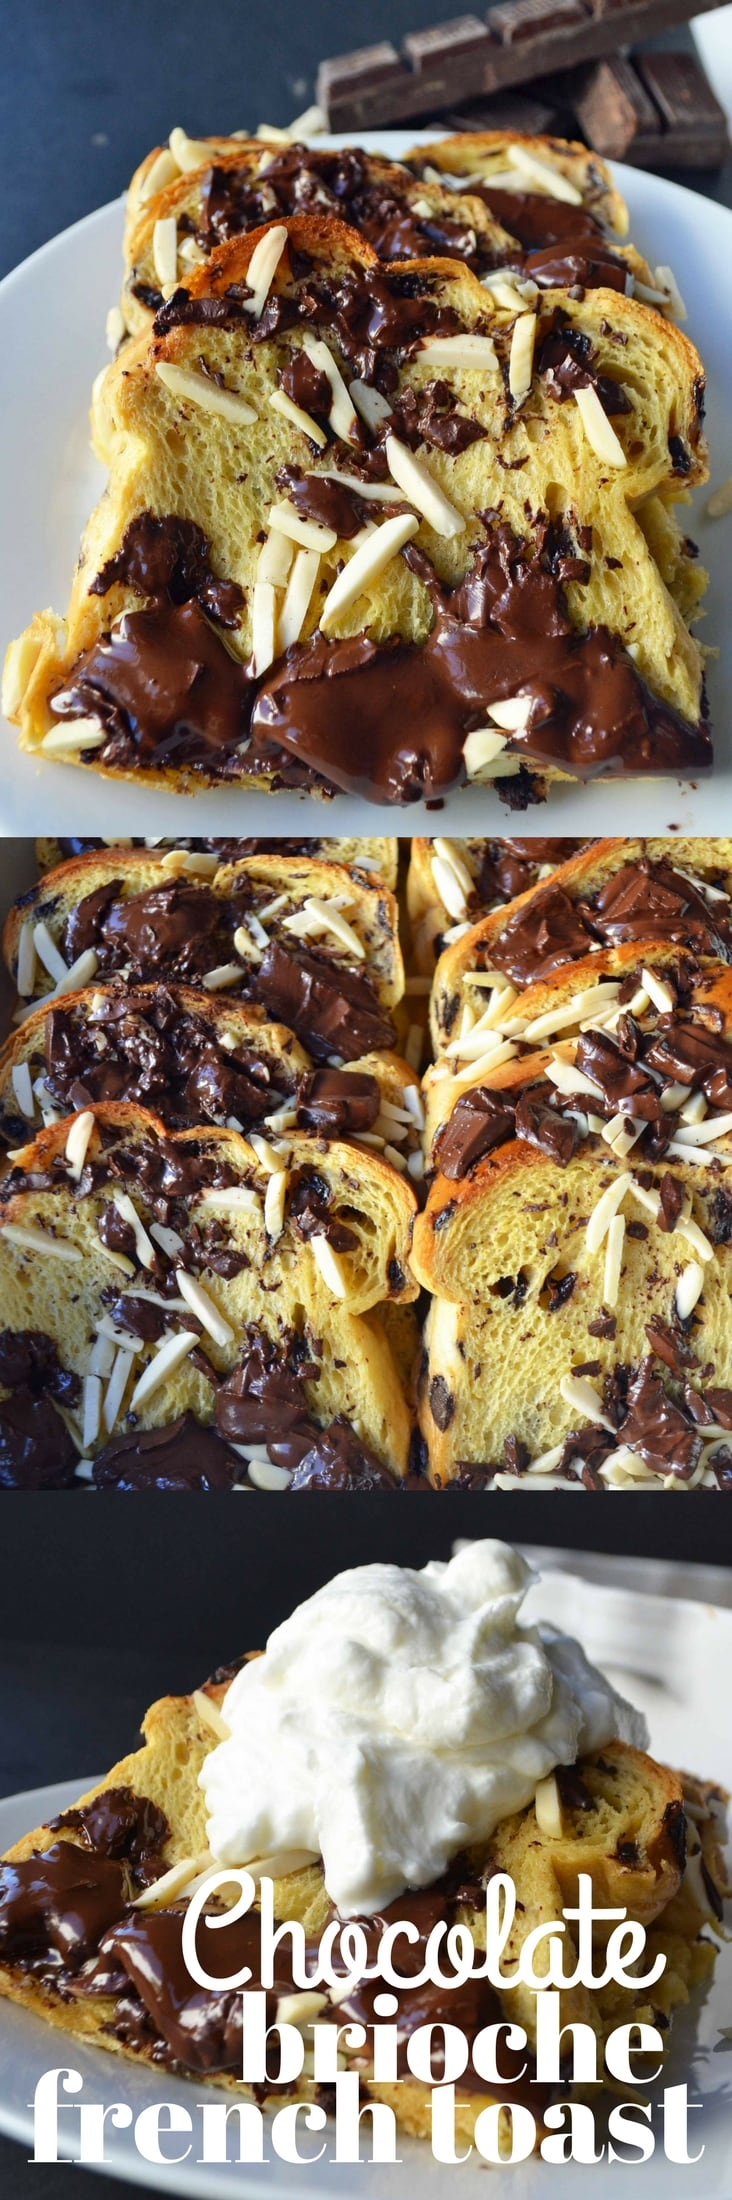 Chocolate Almond Brioche French Toast by Modern Honey.